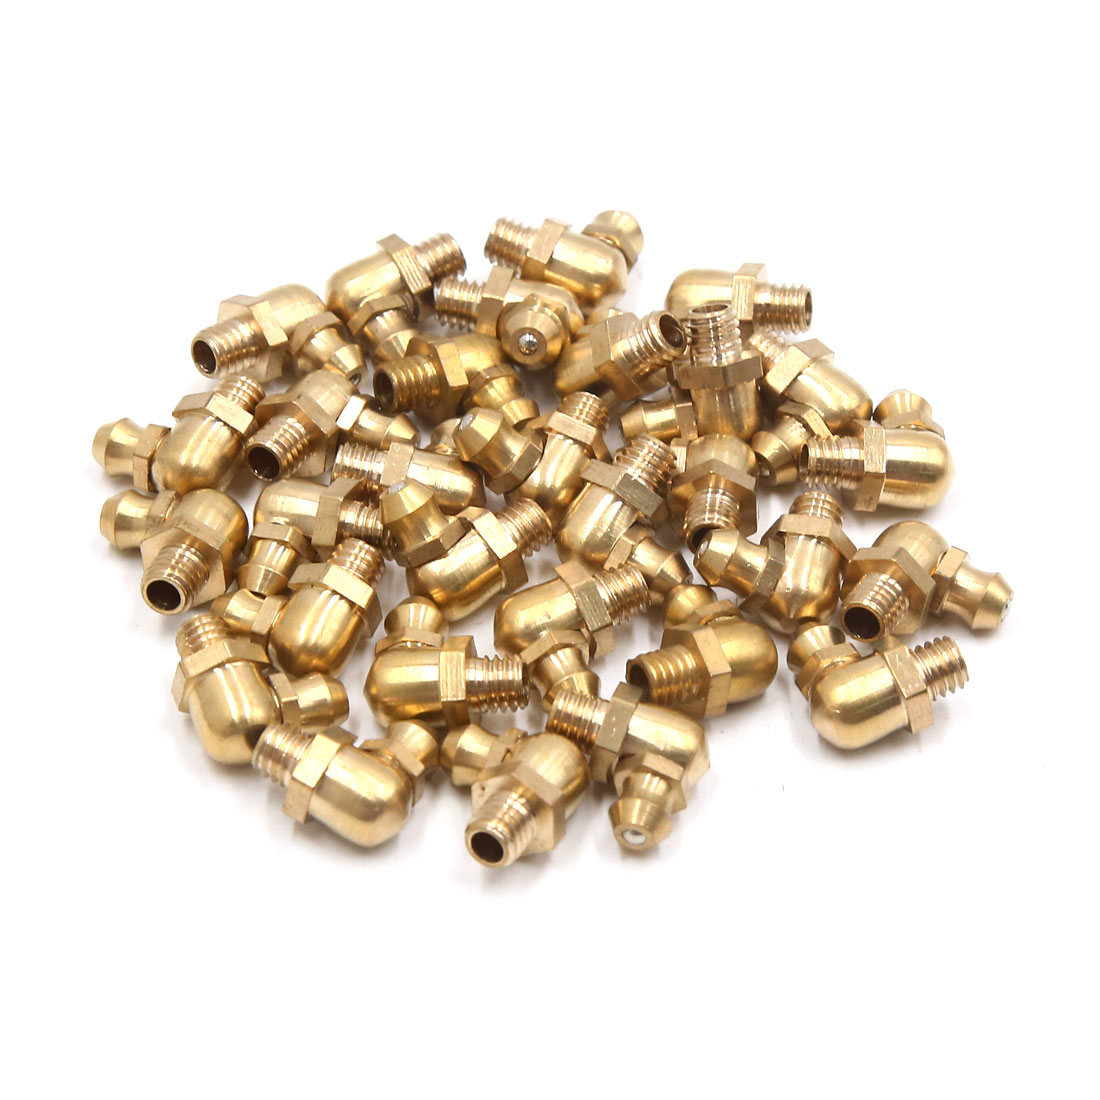 30Pcs M6 x 1 Thread 90 Degree Angle Brass Grease Zerk Nipple Fitting for Car